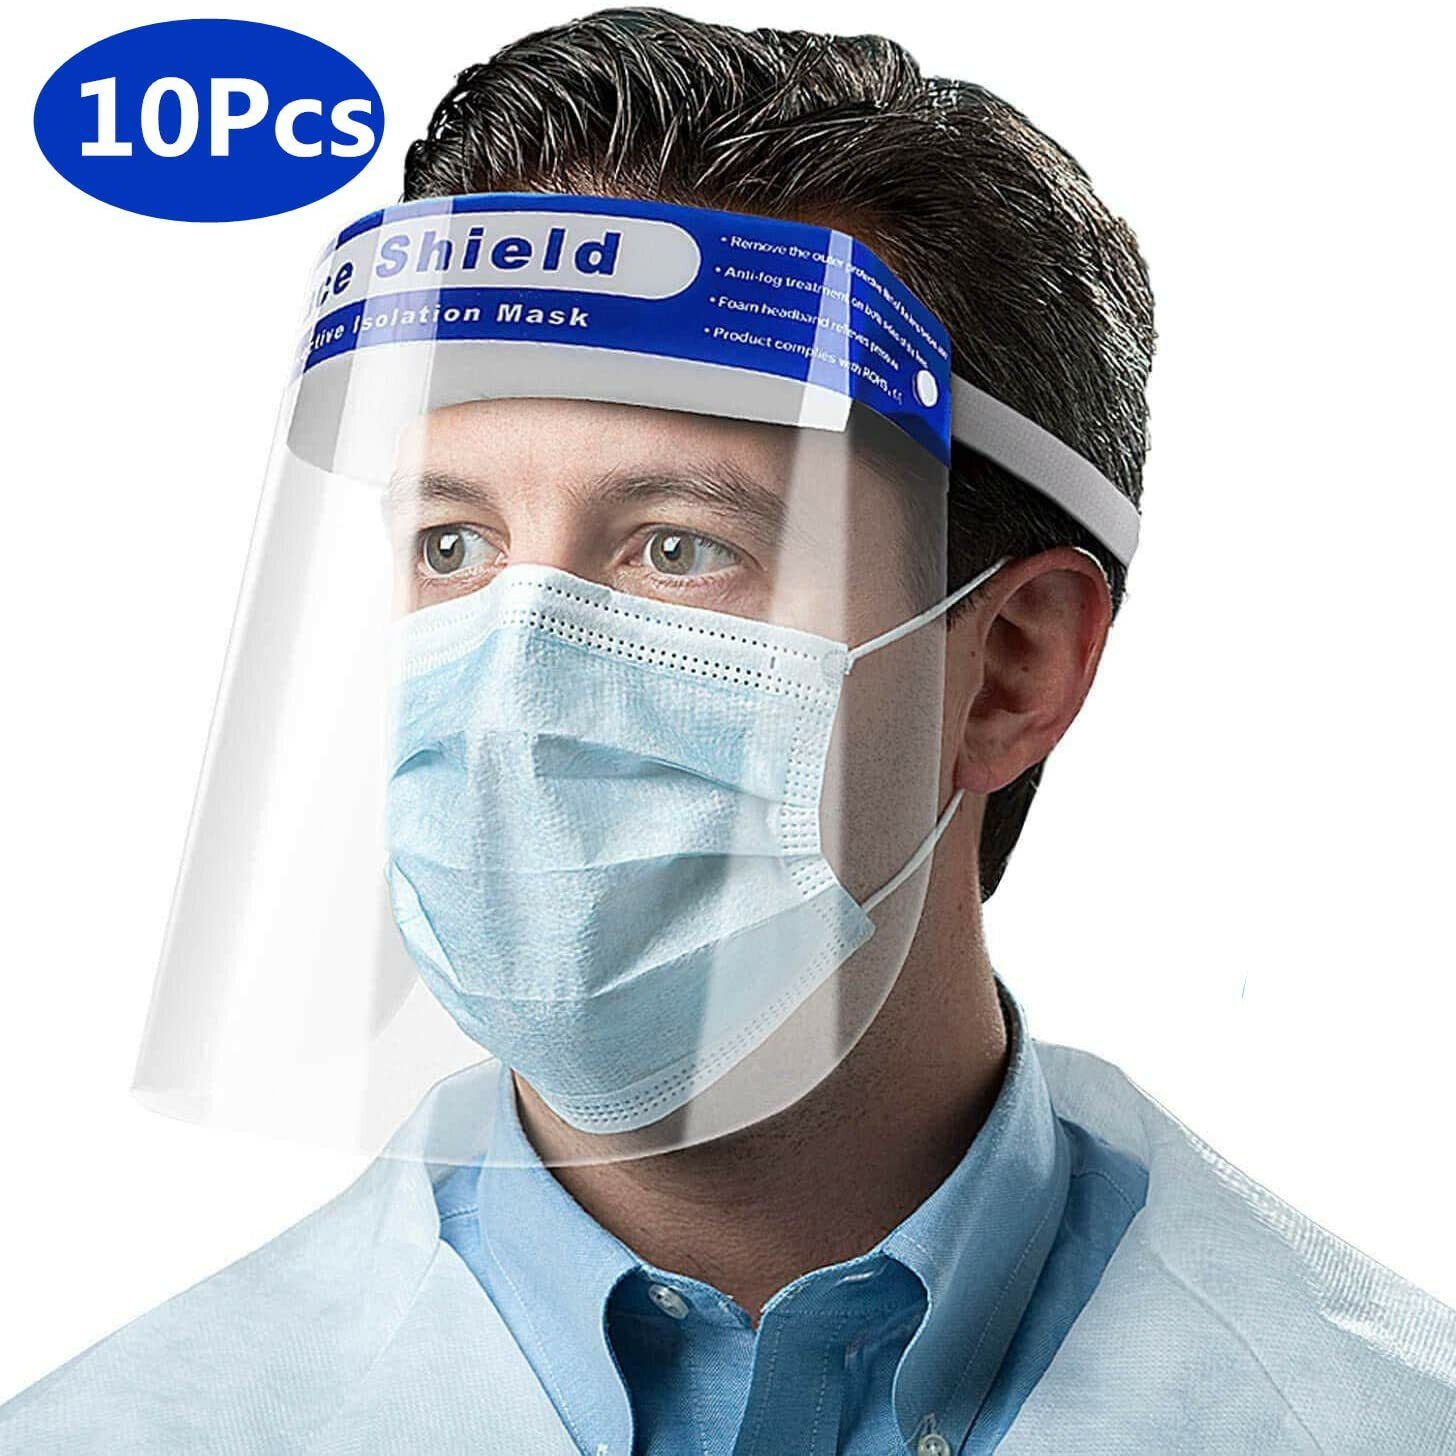 US Safety Full Face Shield Adjustable Anti-Fog Protective Face Cover Transparent